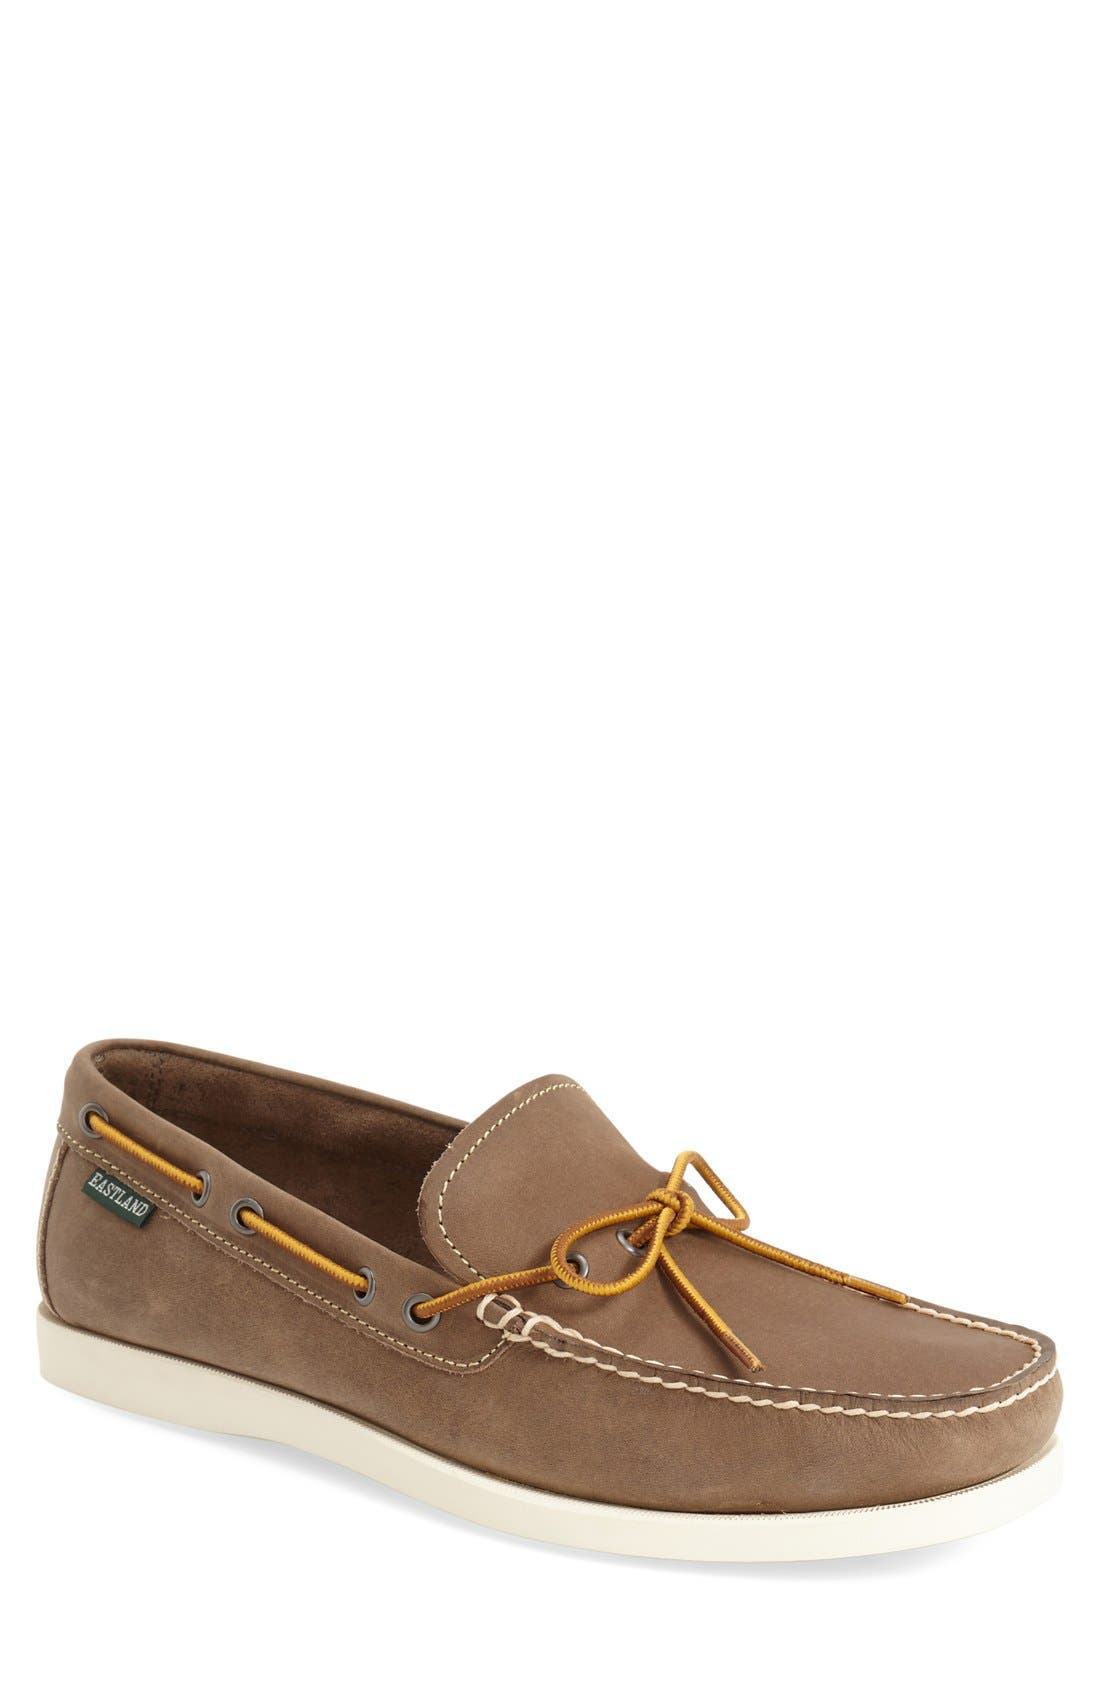 Eastland 'Yarmouth' Boat Shoe